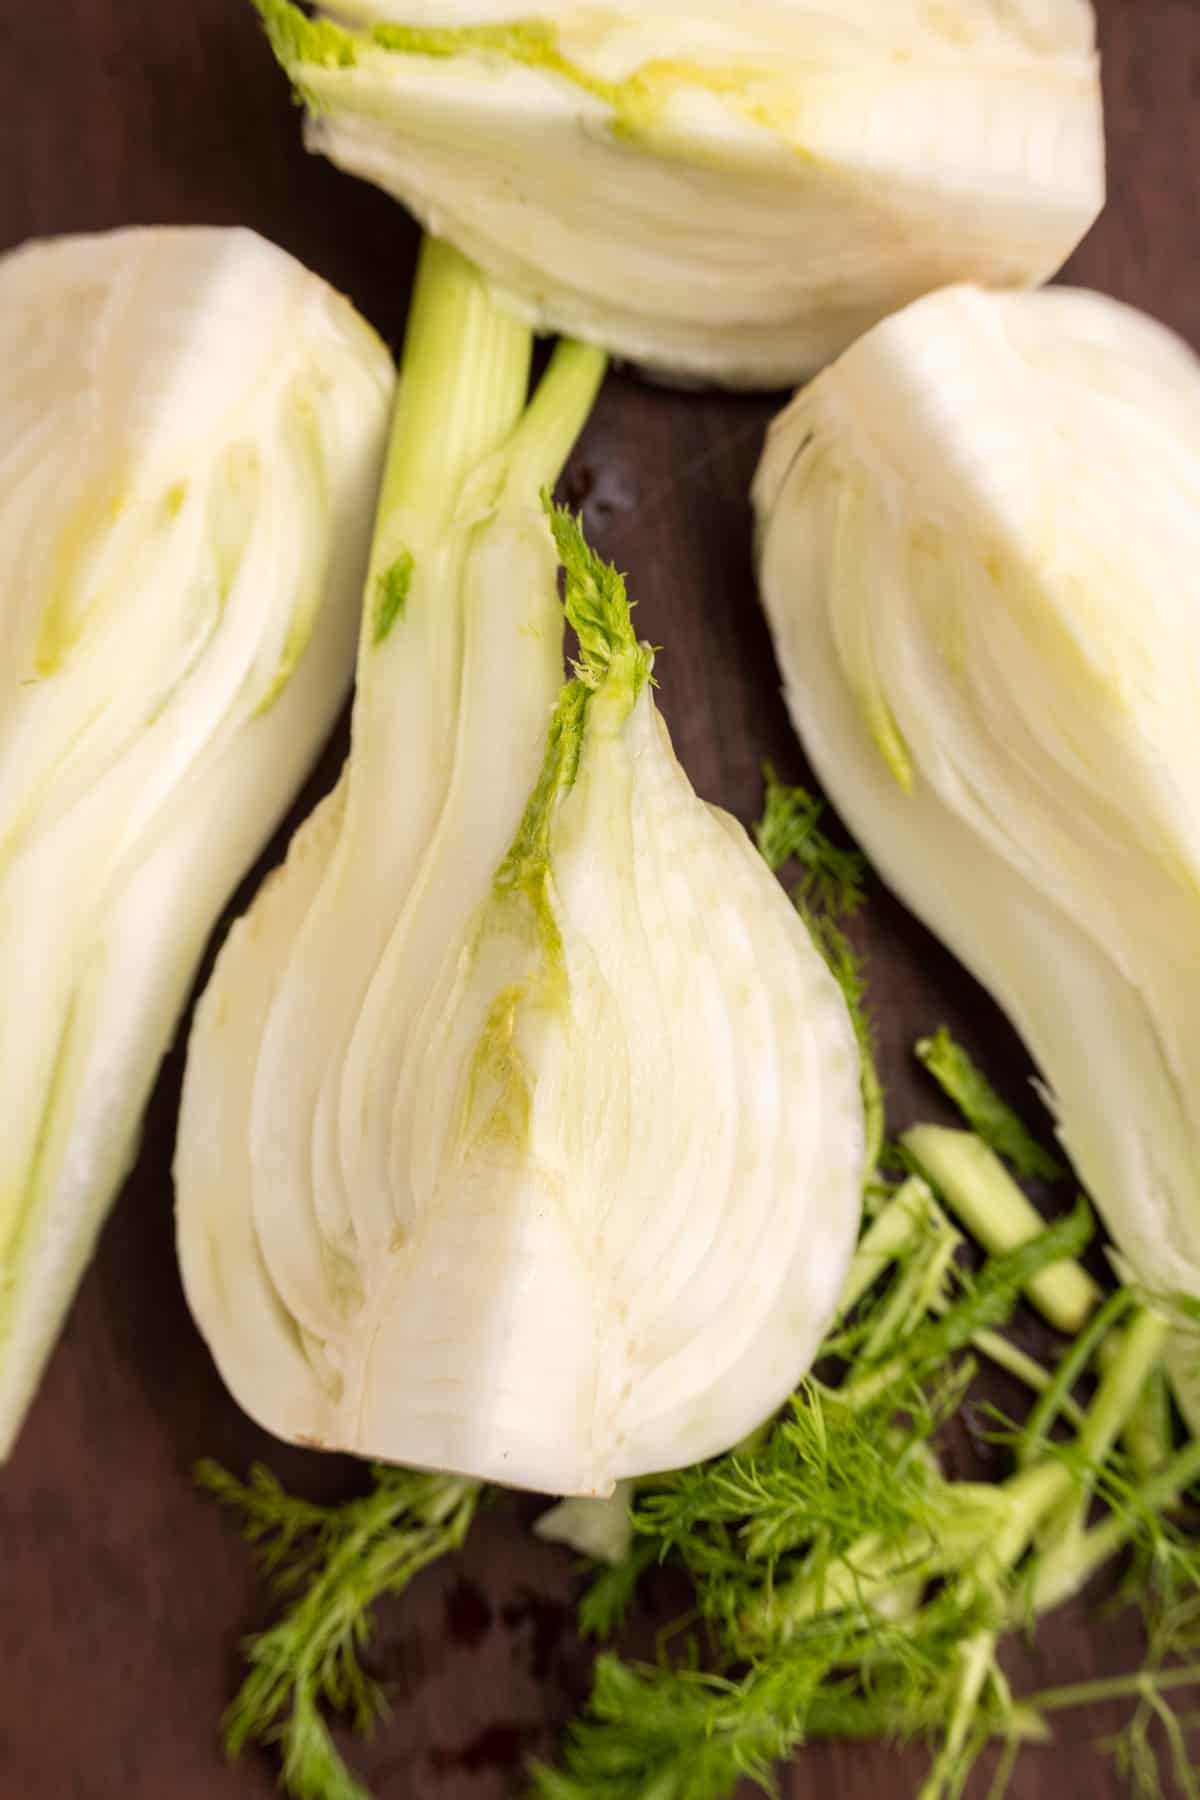 A bulb of fennel cut into quarters. The quarter bulbs are sitting on a wooden board, and the green fronds have been chopped off and set aside.